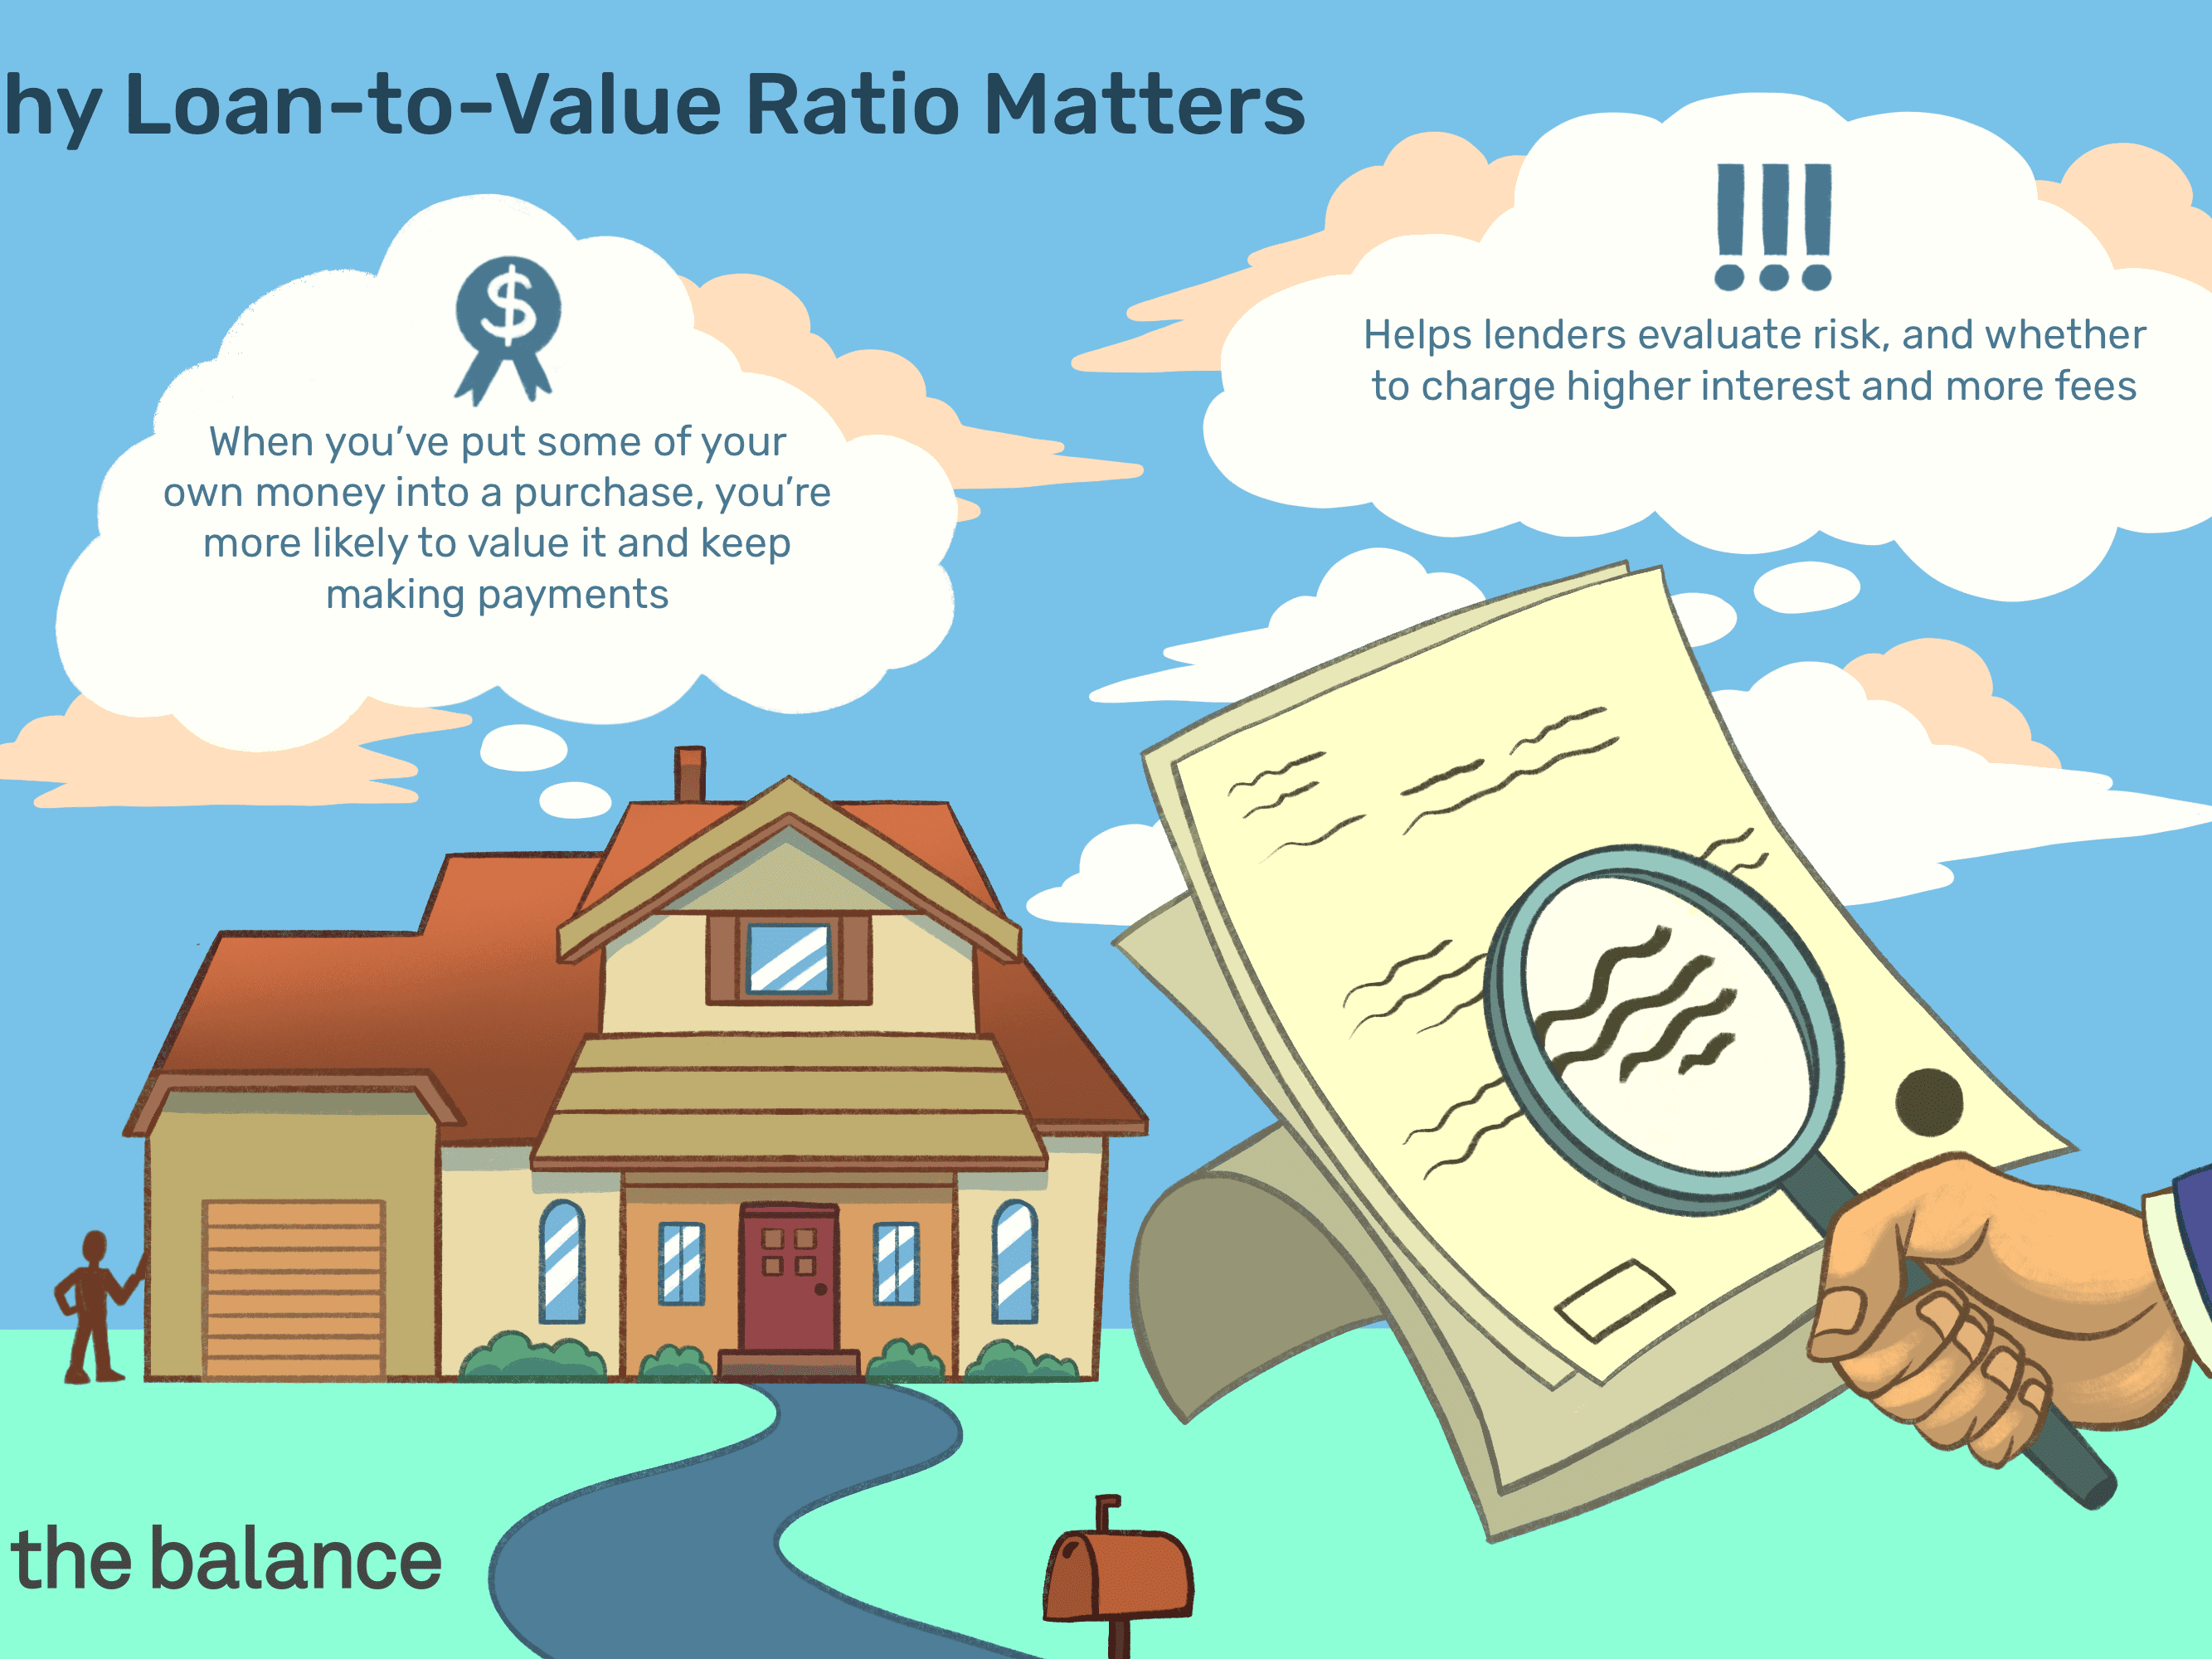 Loan-to-Value Ratio: What It Is and How to Calculate It